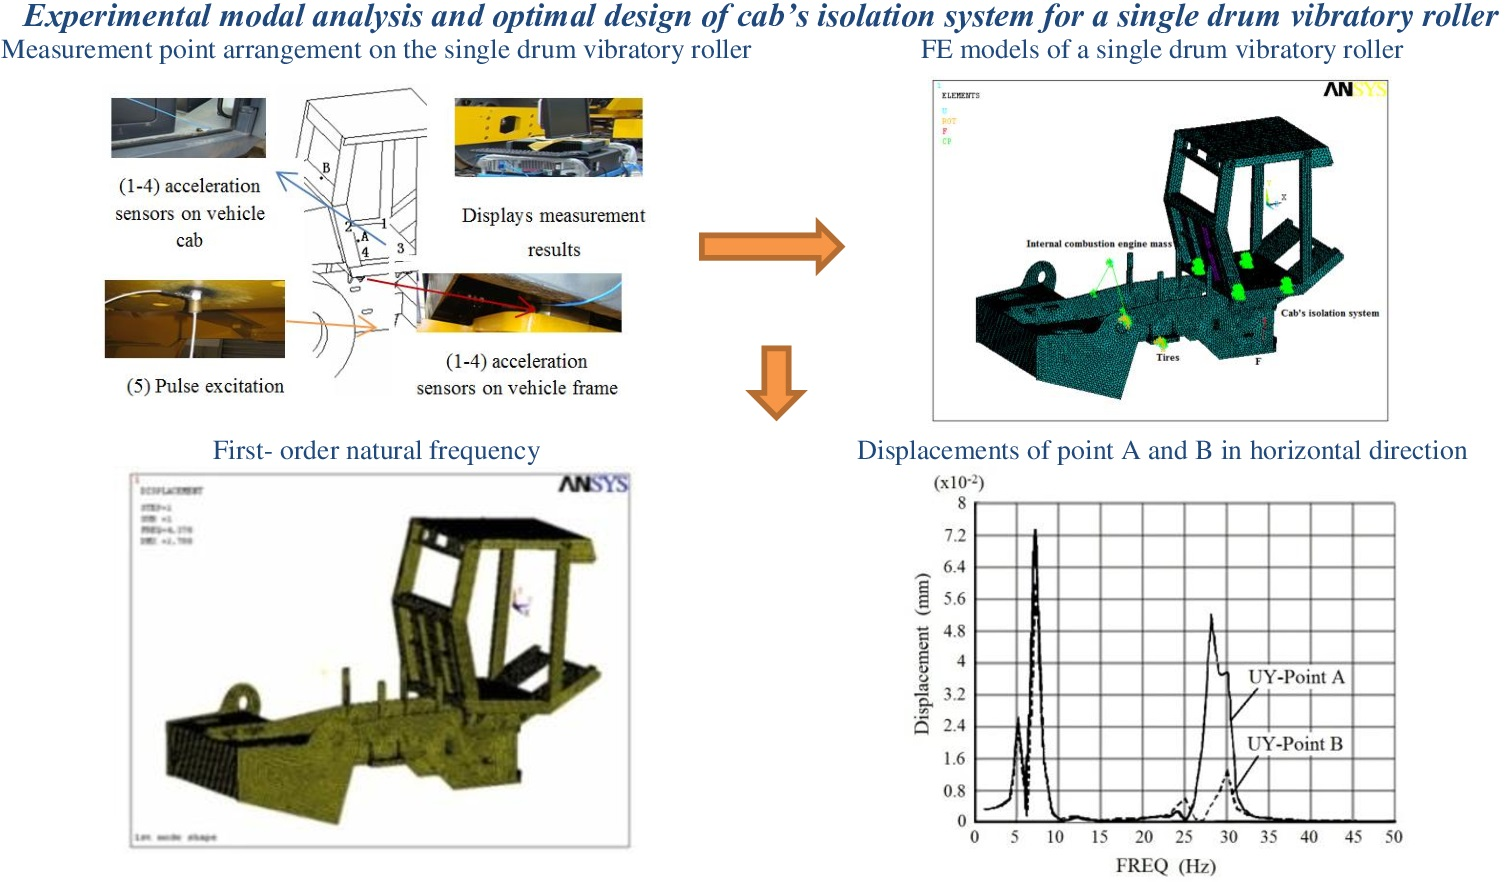 Experimental modal analysis and optimal design of cab's isolation system for a single drum vibratory roller